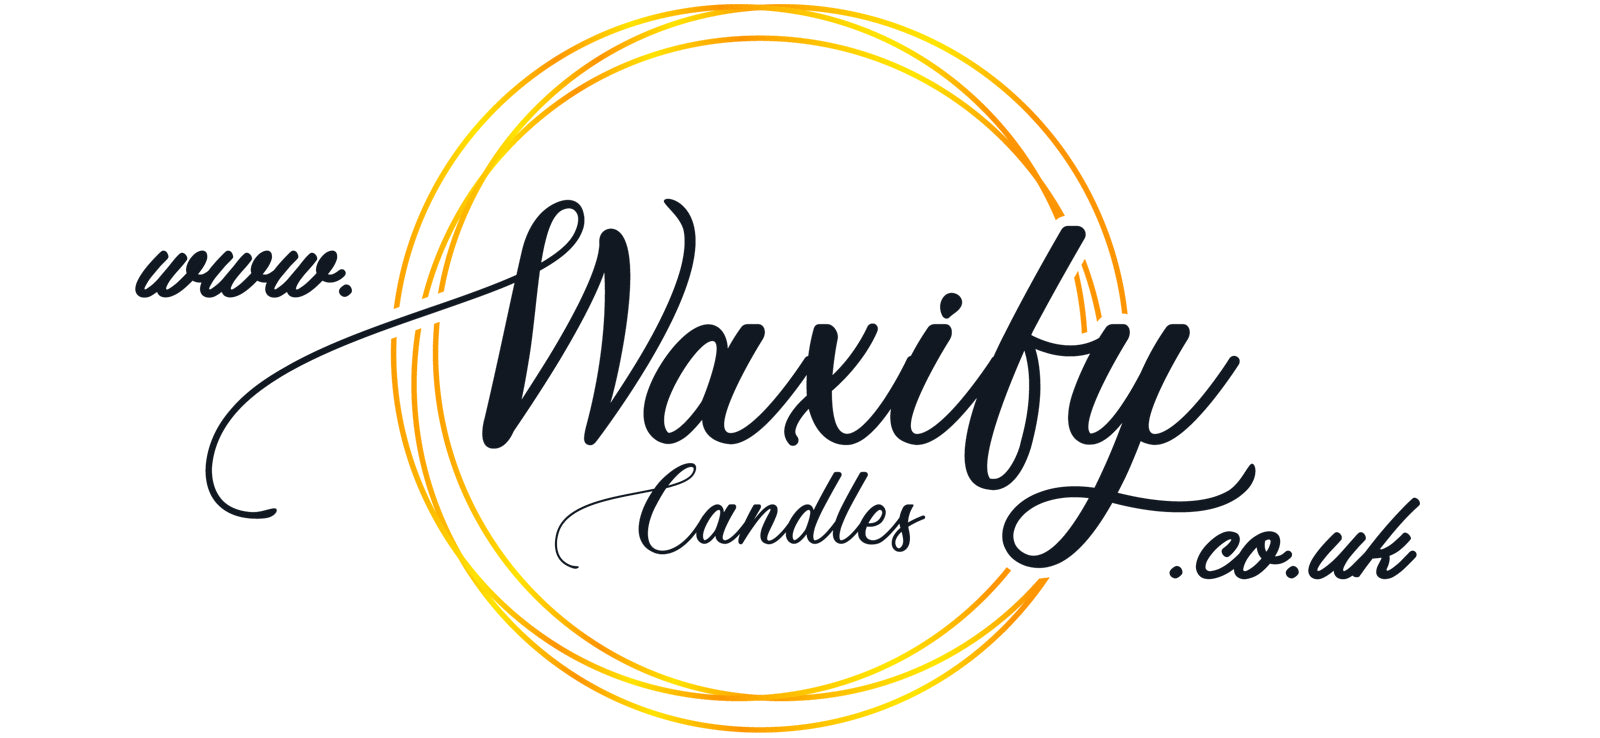 Waxify Candles